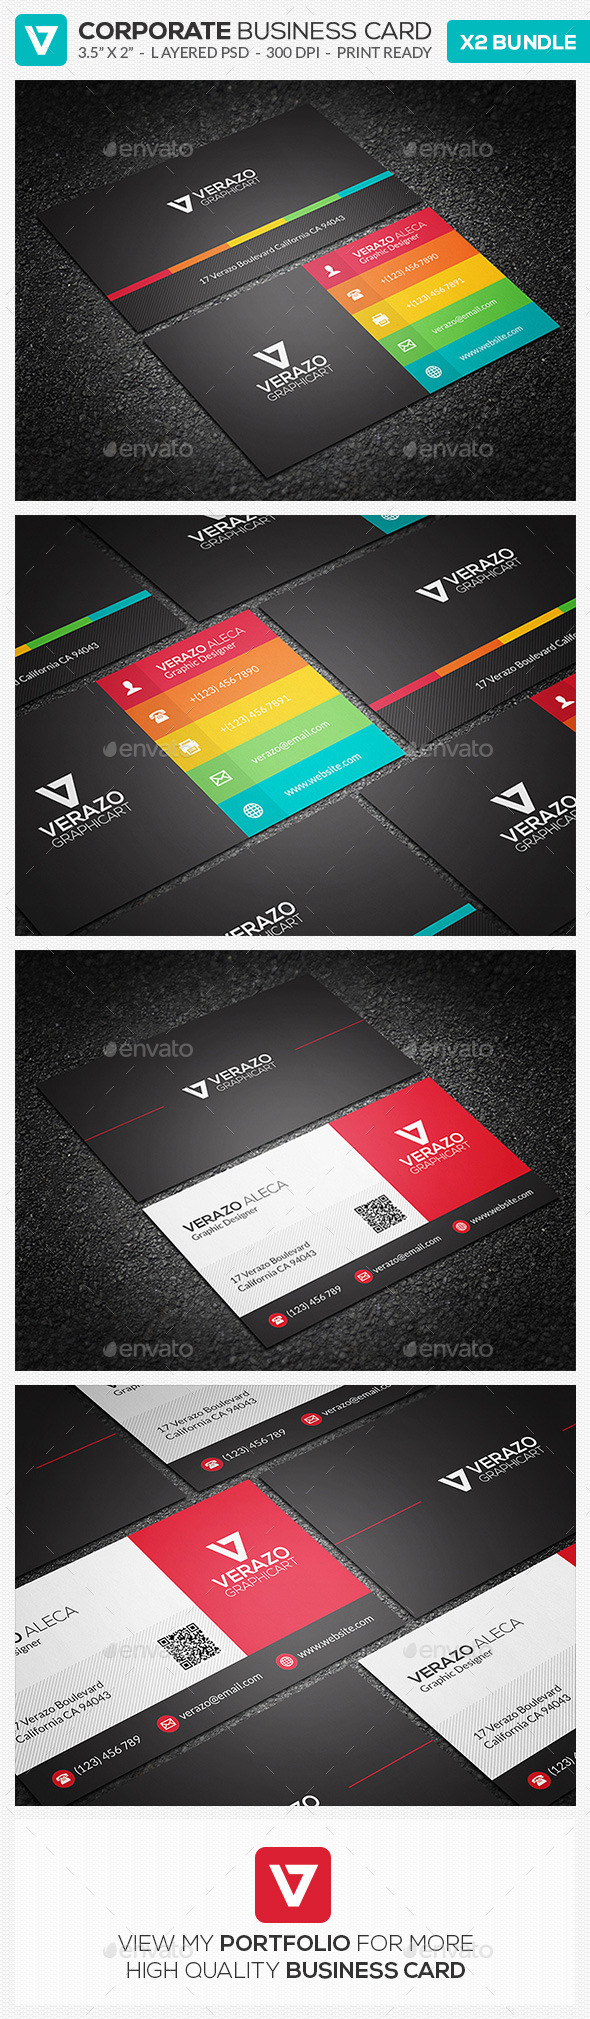 Business Card Bundle 16 - Corporate Business Cards